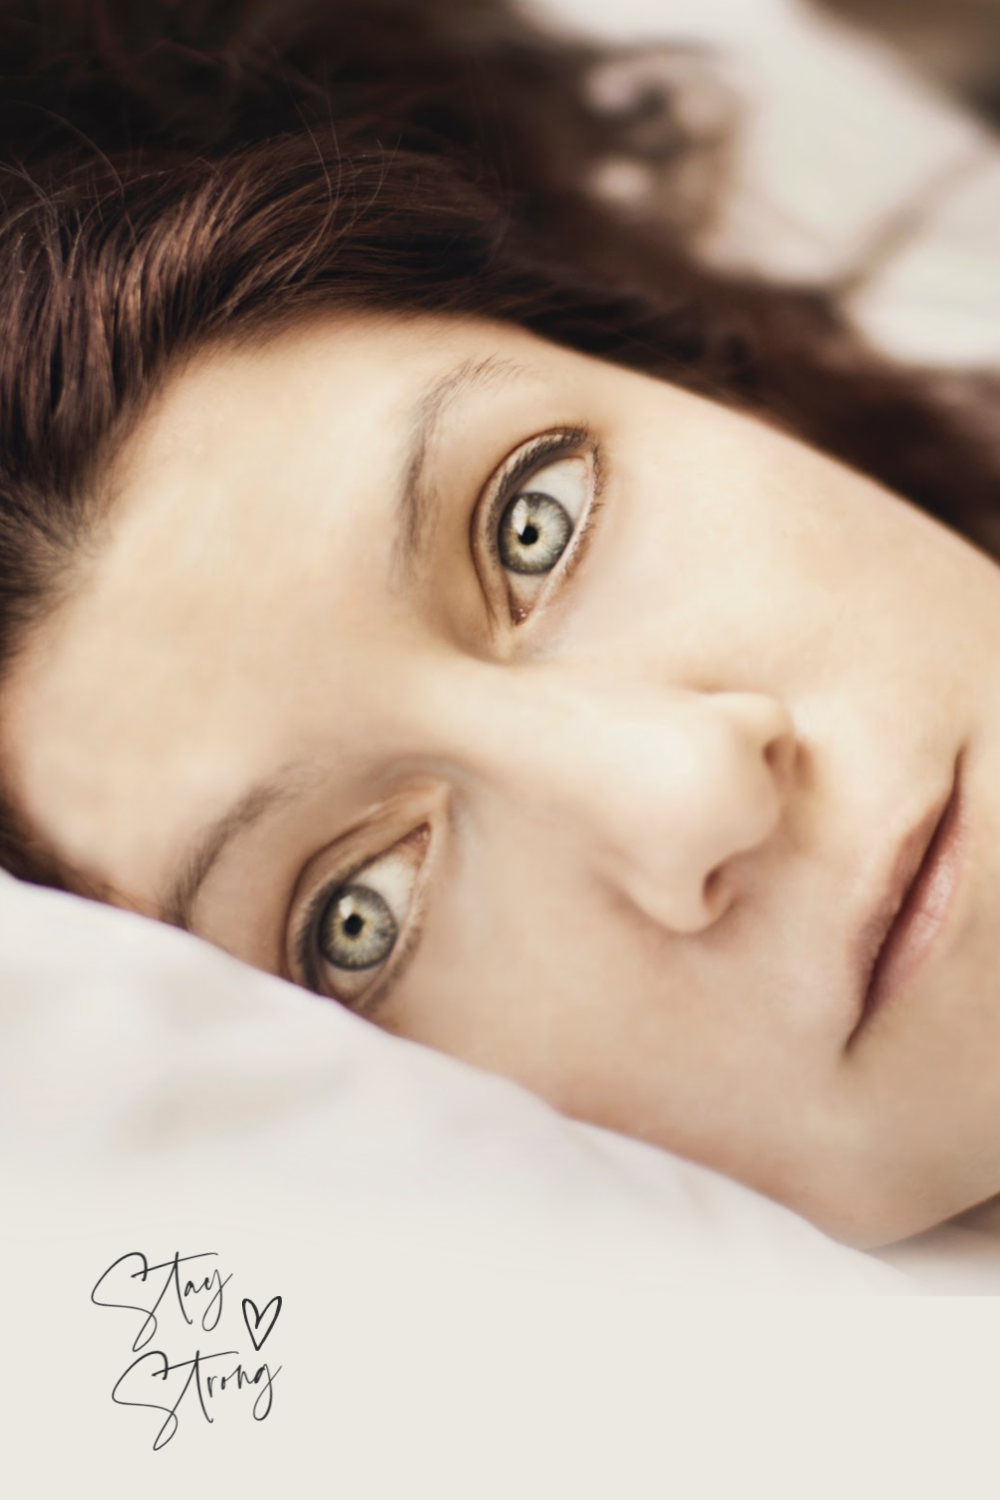 7 Tiny Ways to Help You Get Out of Bed when Crushing Depression FatigueStrikes